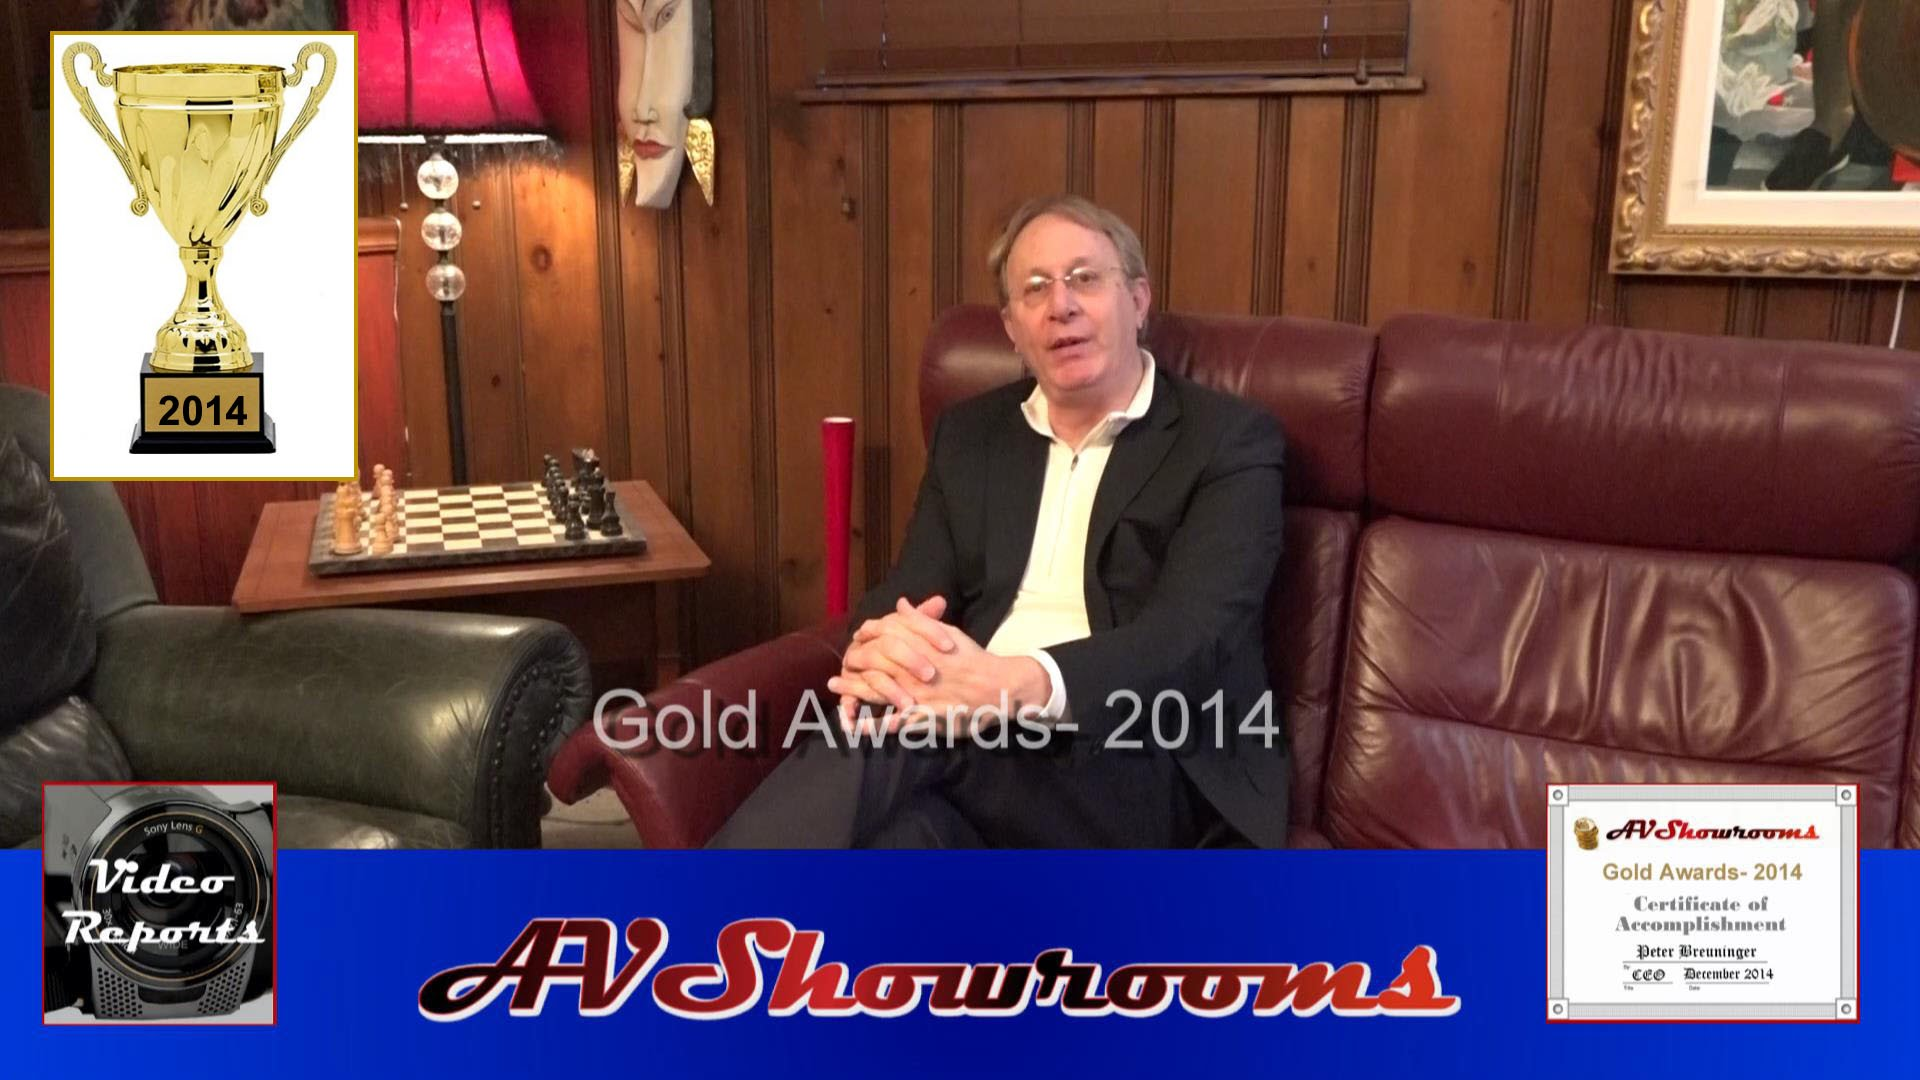 2014 Annual Gold Awards